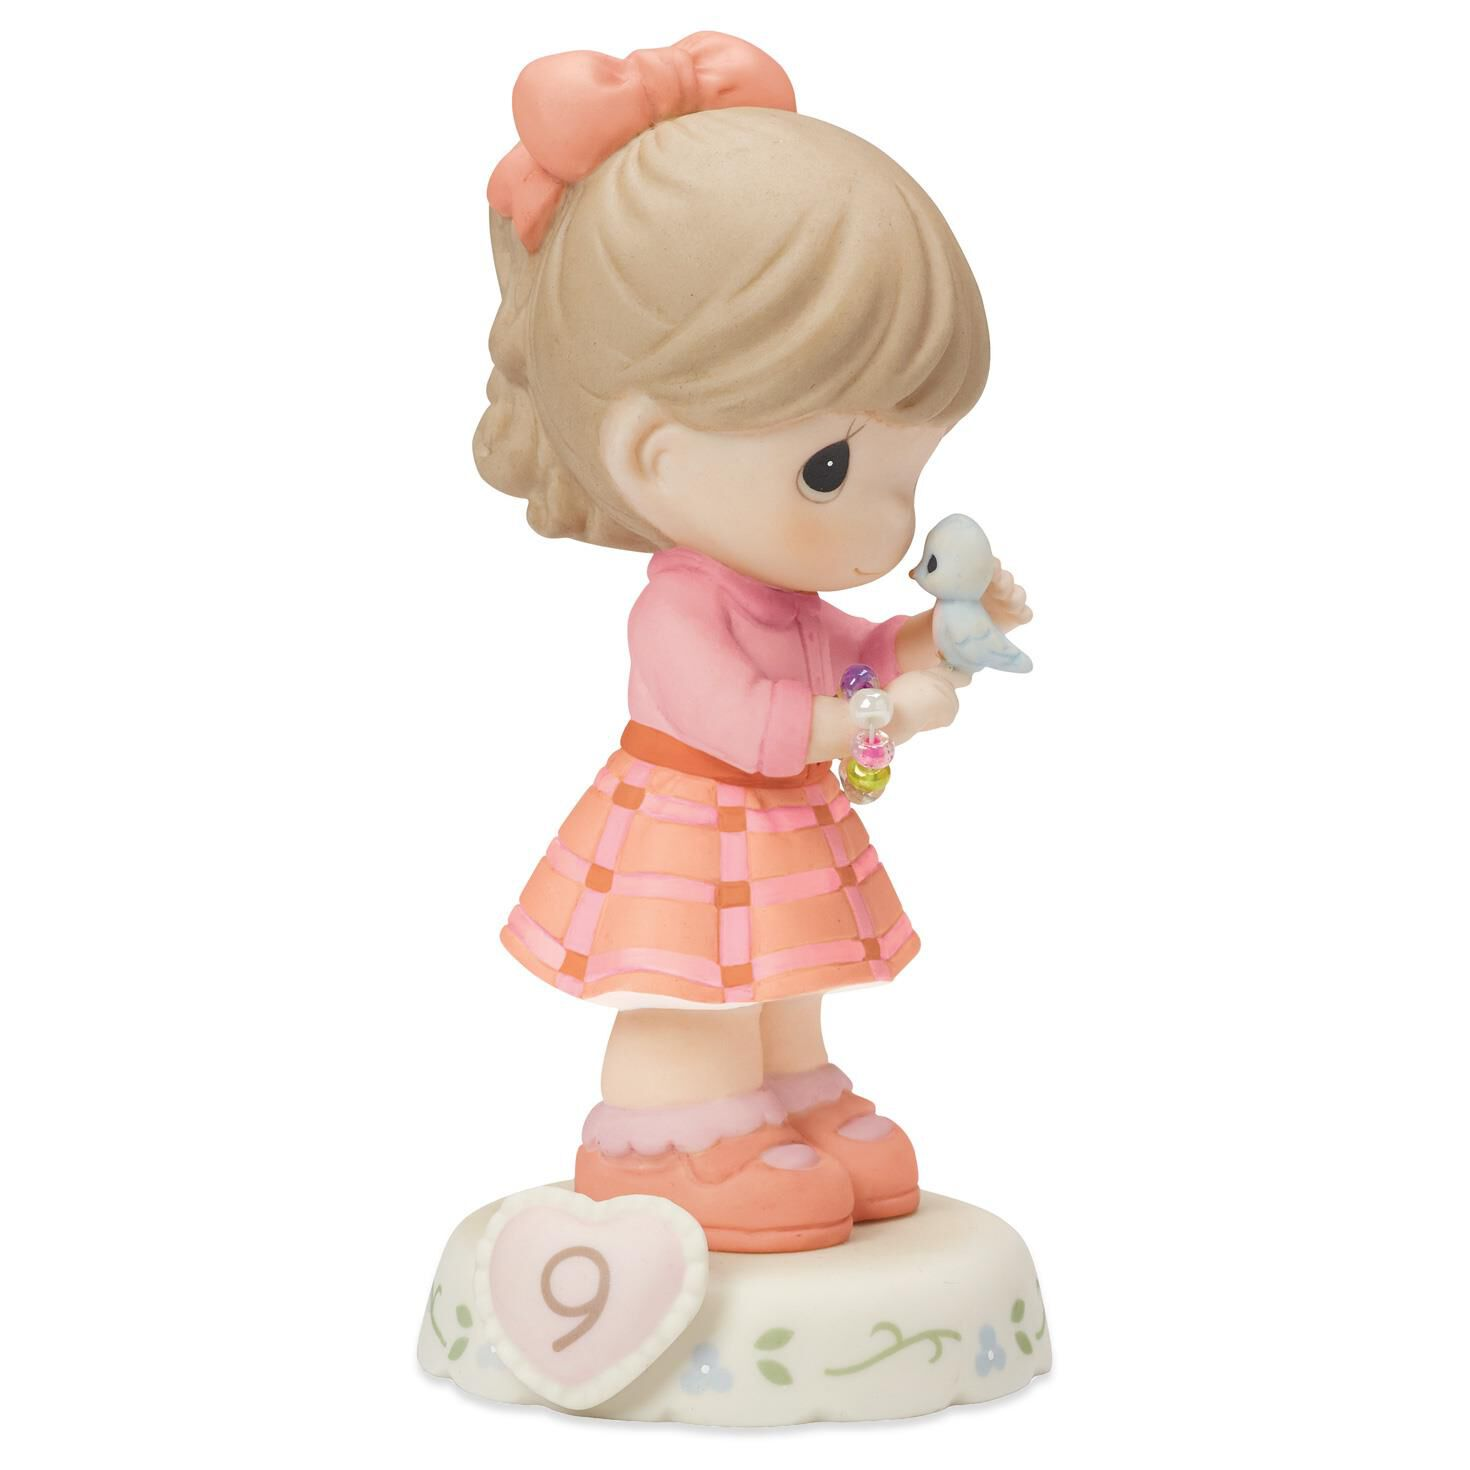 Precious Moments Growing in Grace—Age 9 Brunette Girl Porcelain